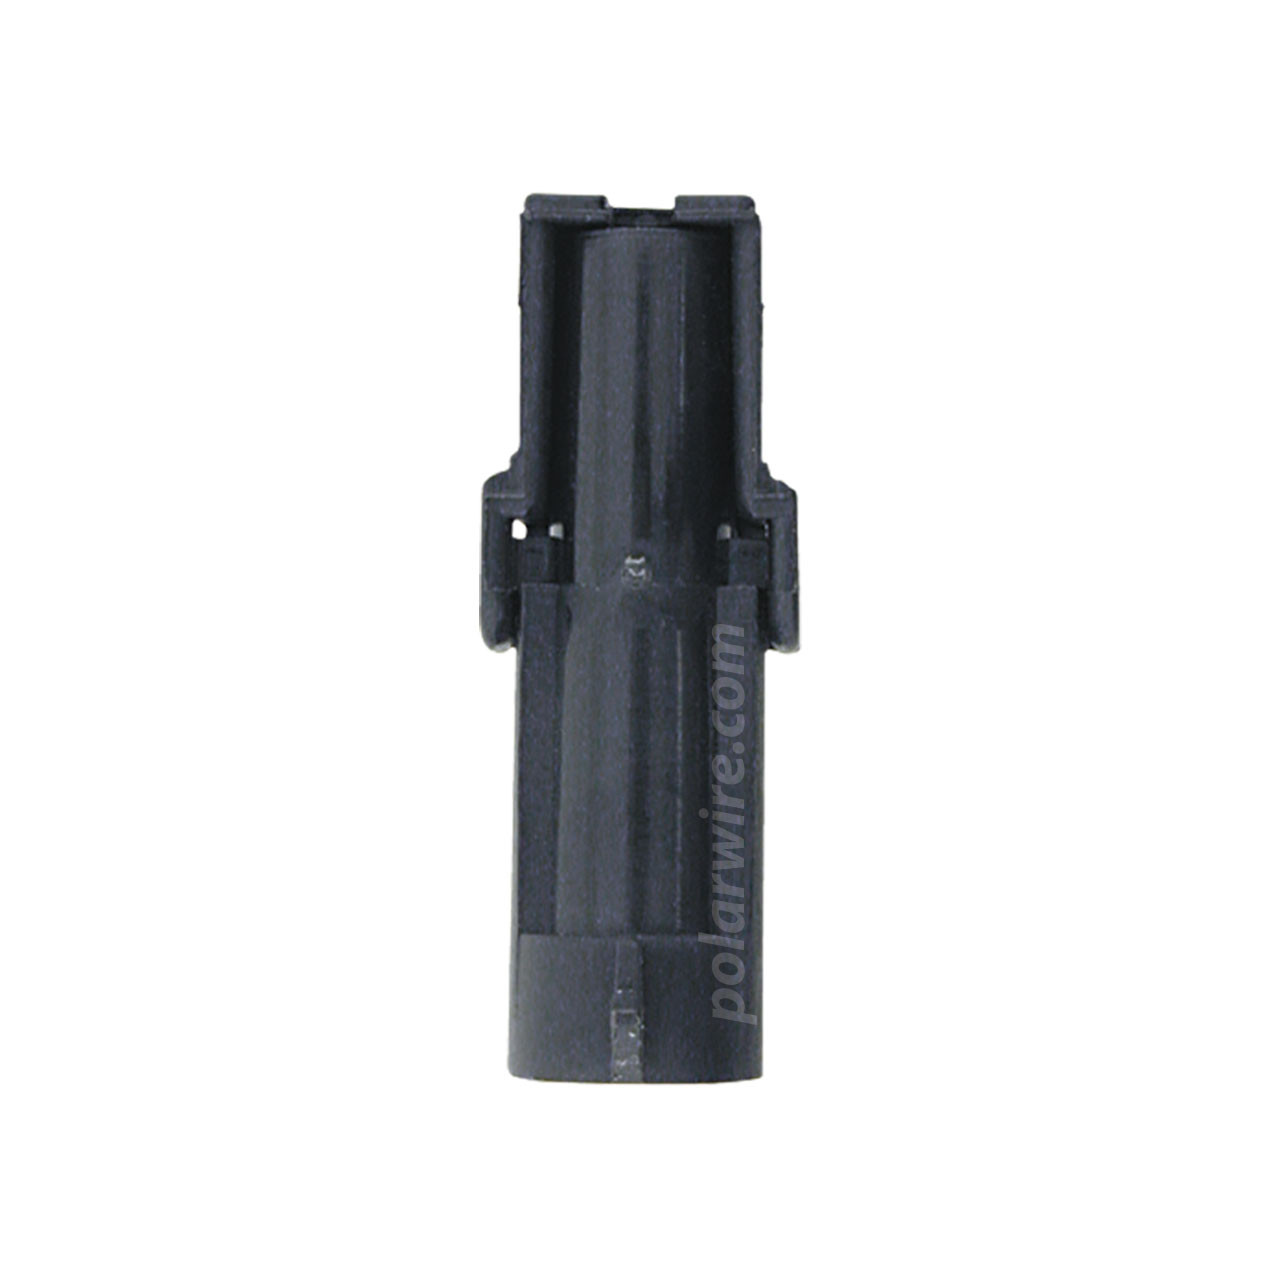 WEATHER PACK 1 PIN MALE SHROUD HOUSING